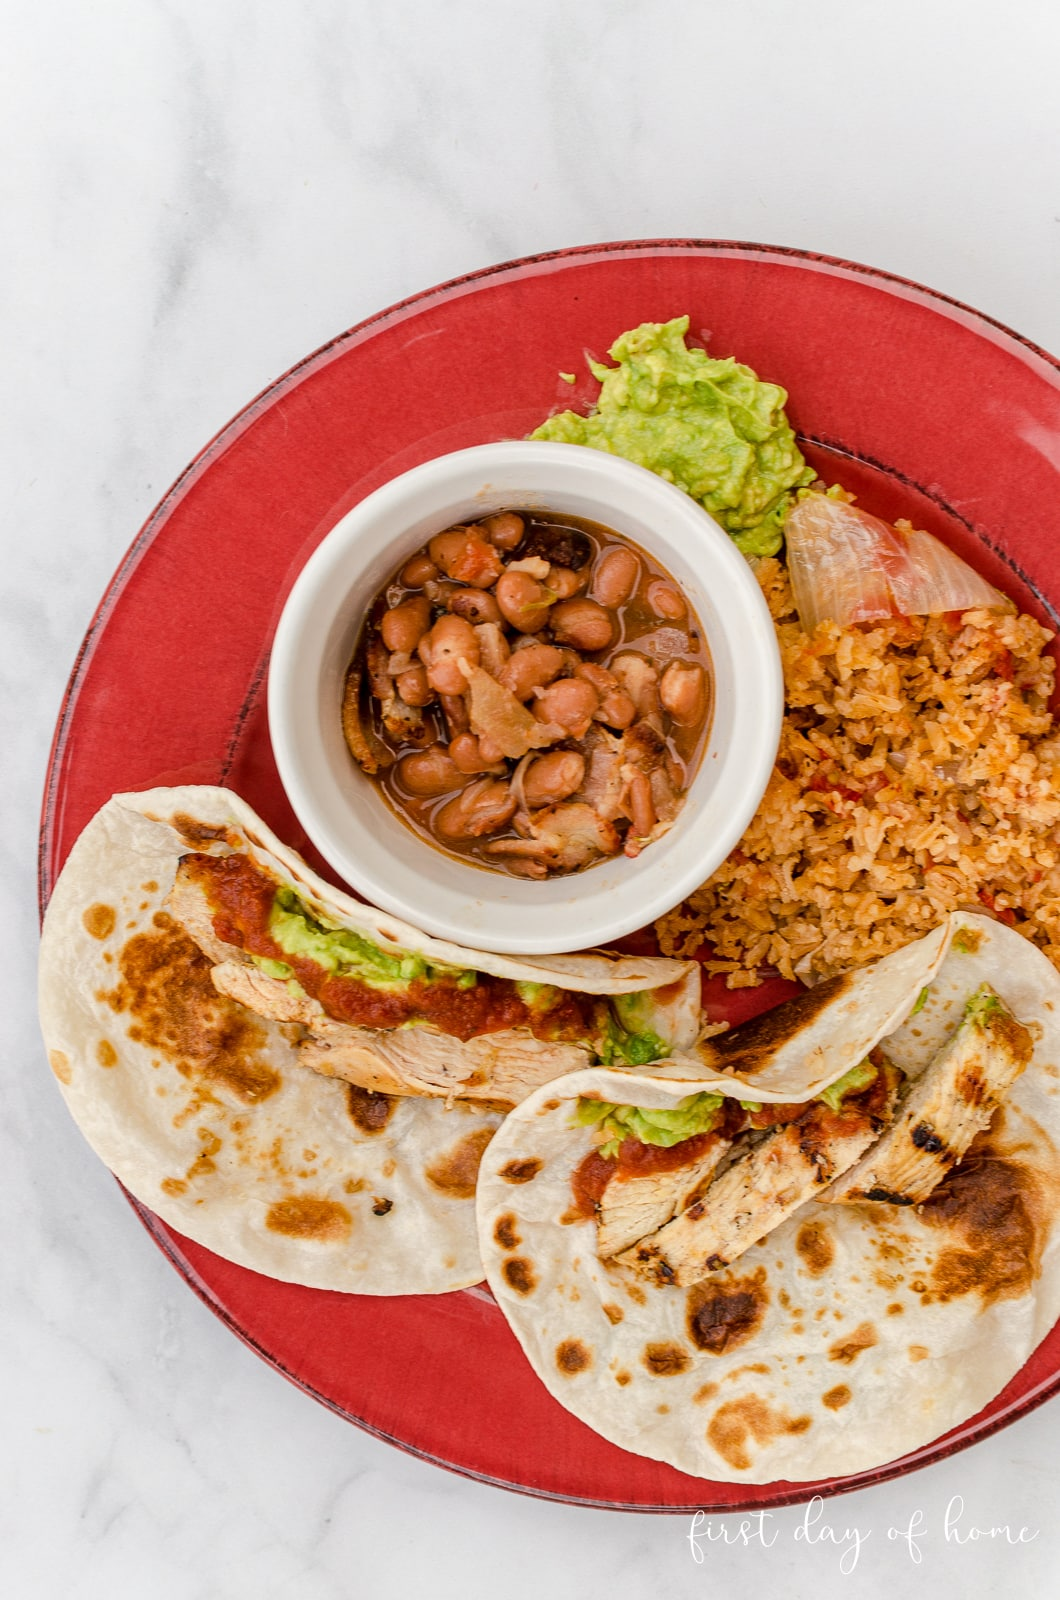 Chicken fajitas tacos served with Spanish rice and charro beans